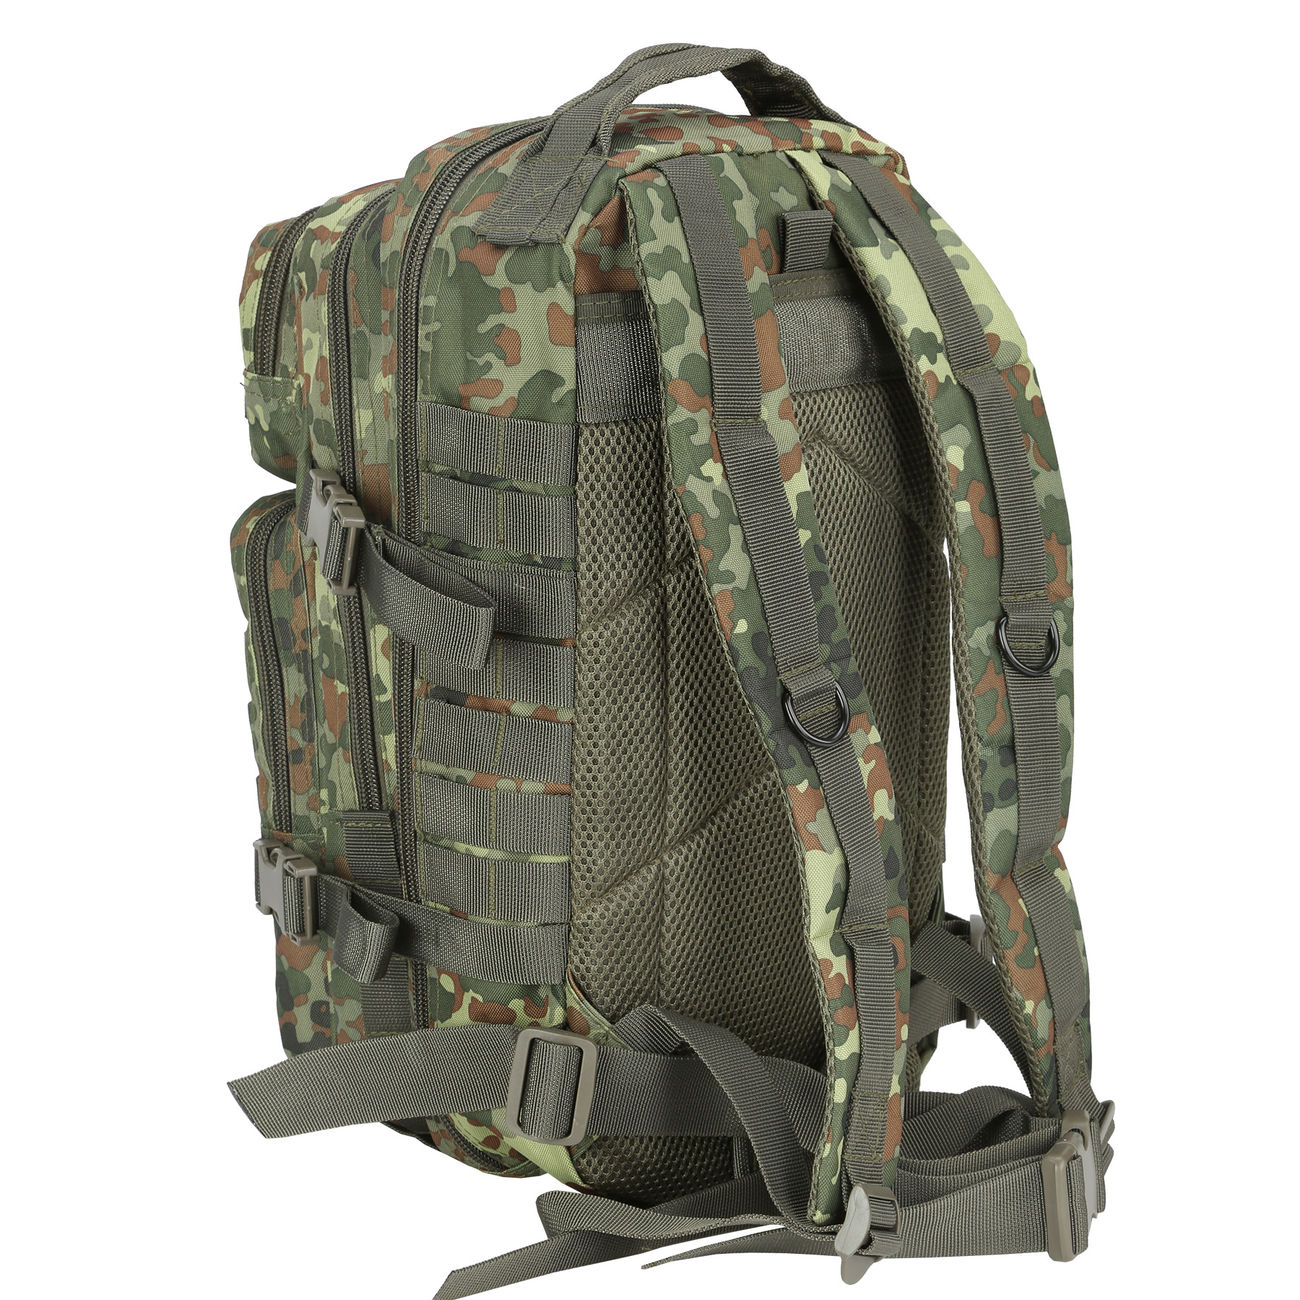 MFH Rucksack US Assault flecktarn 3